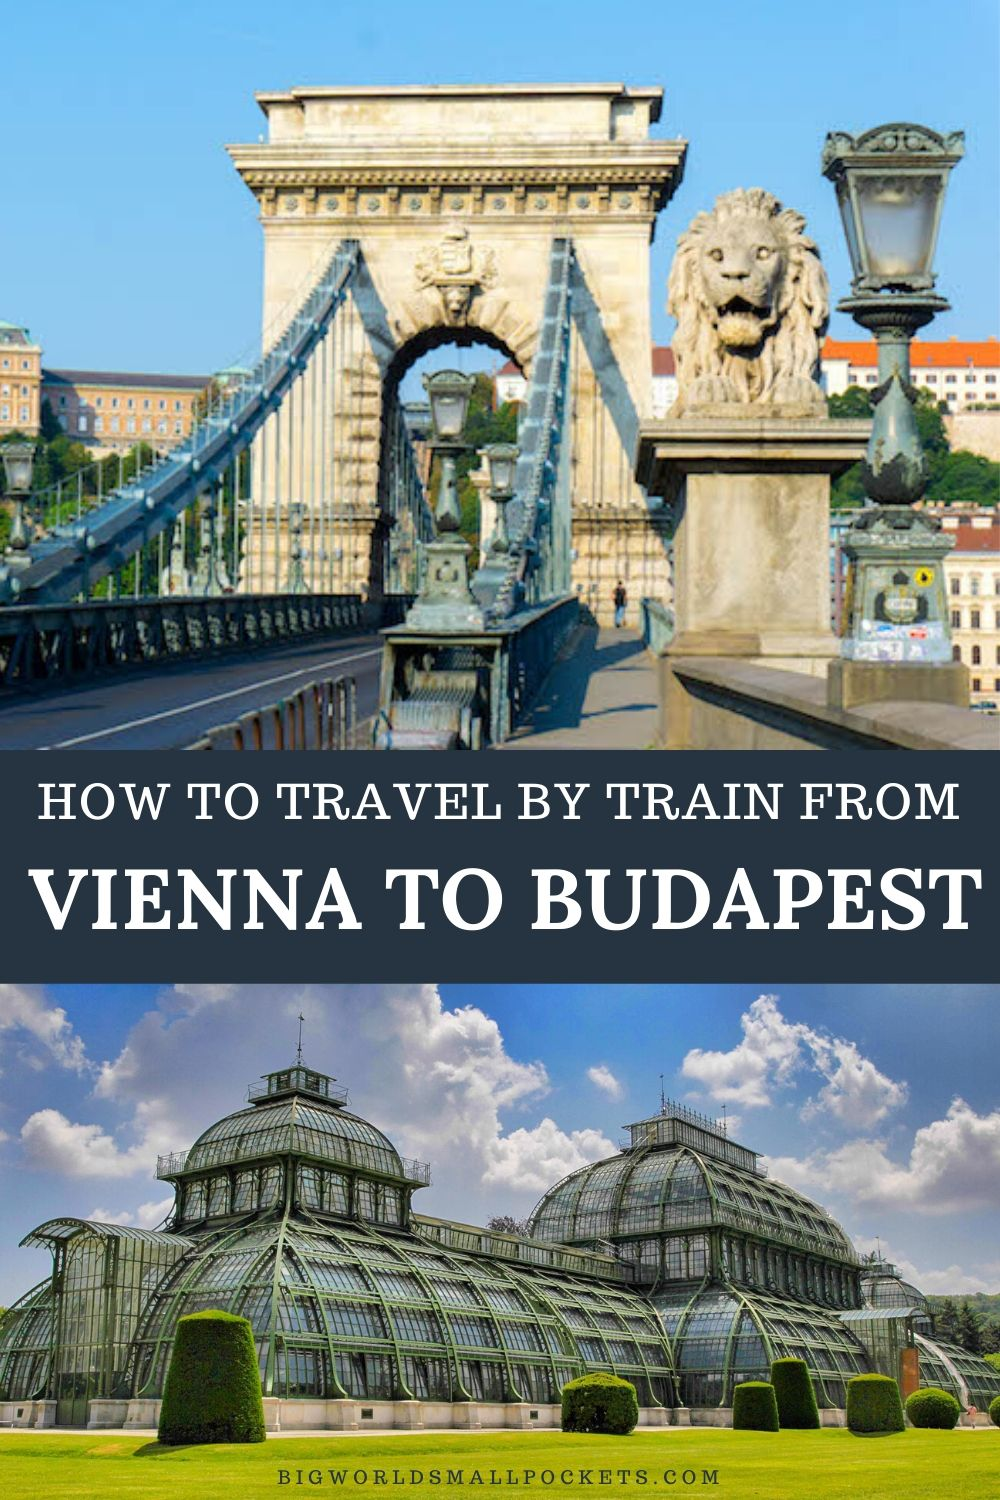 Everything You Need to Know About Catching the Train from Vienna to Budapest